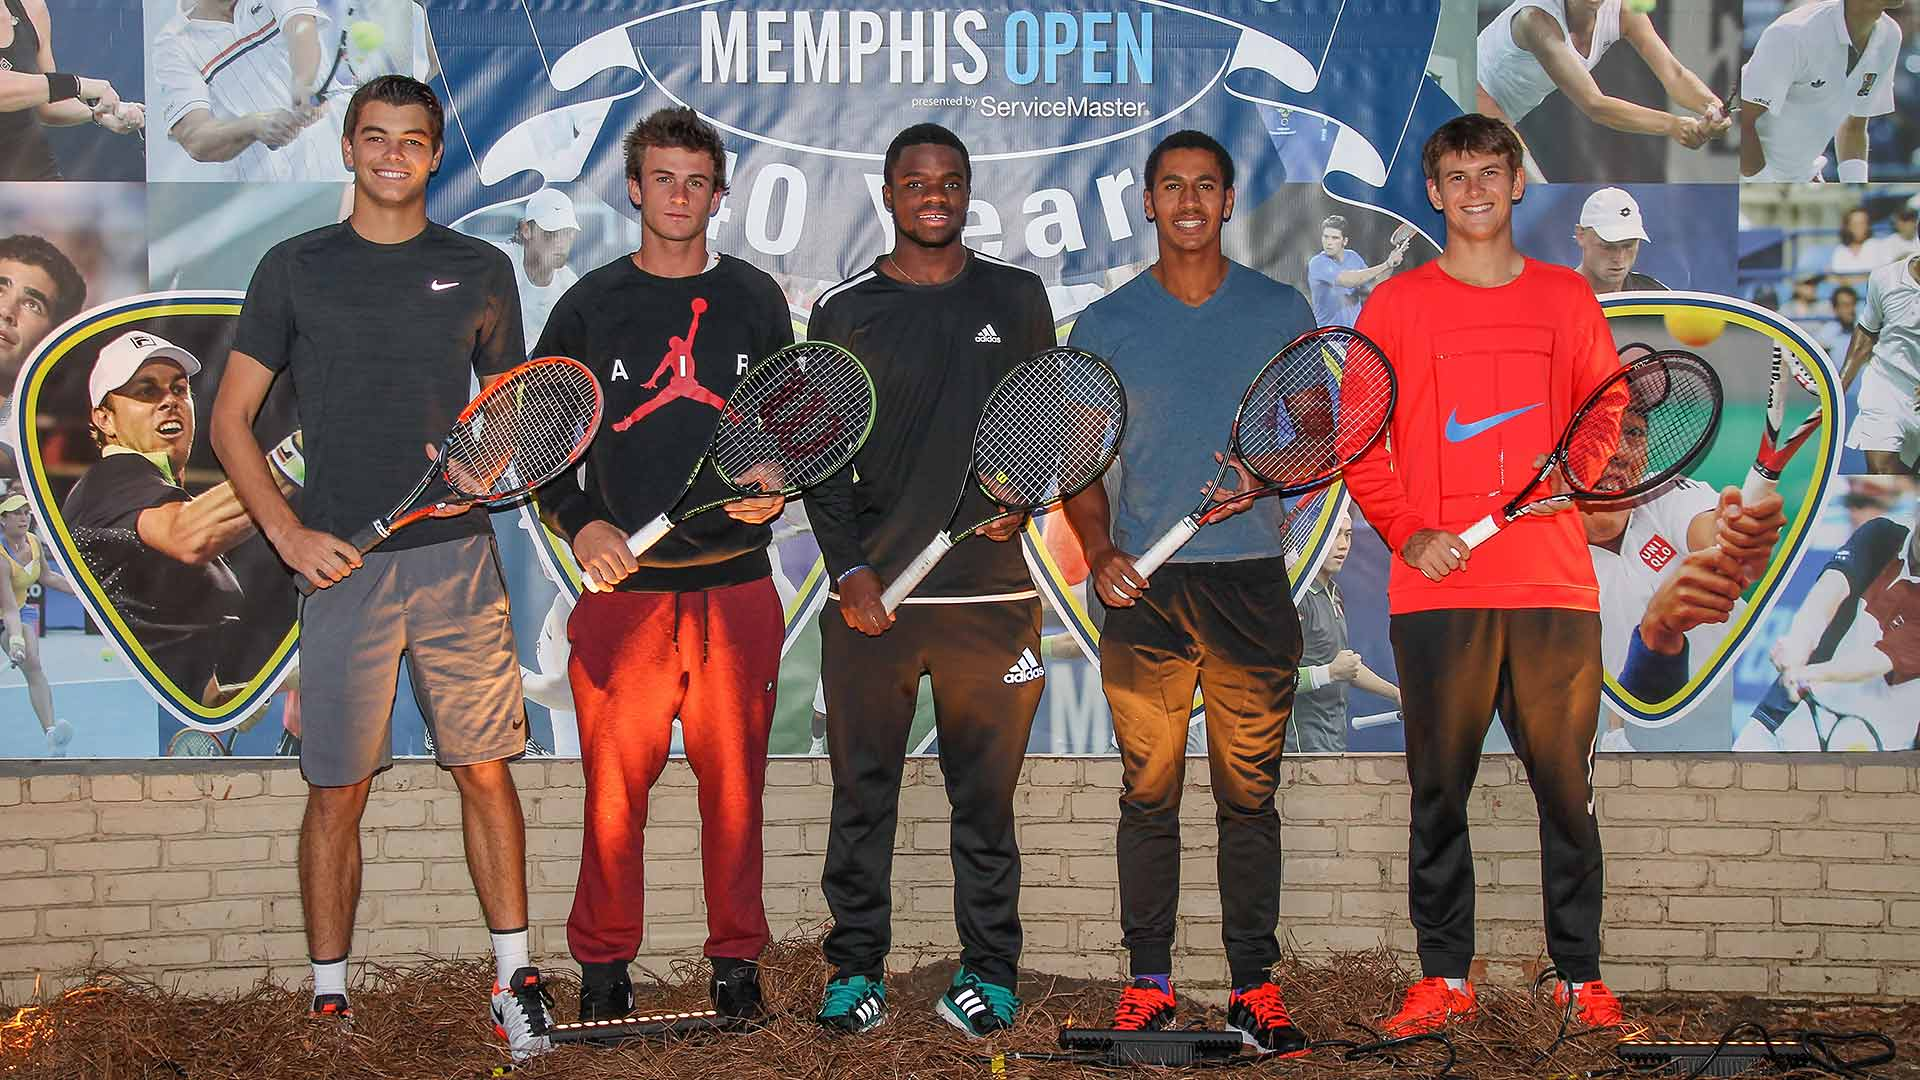 American teens Taylor Fritz (18), Tommy Paul (18), Frances Tiafoe (18), Michael Mmoh (18) and Jared Donaldson (19) in Memphis.